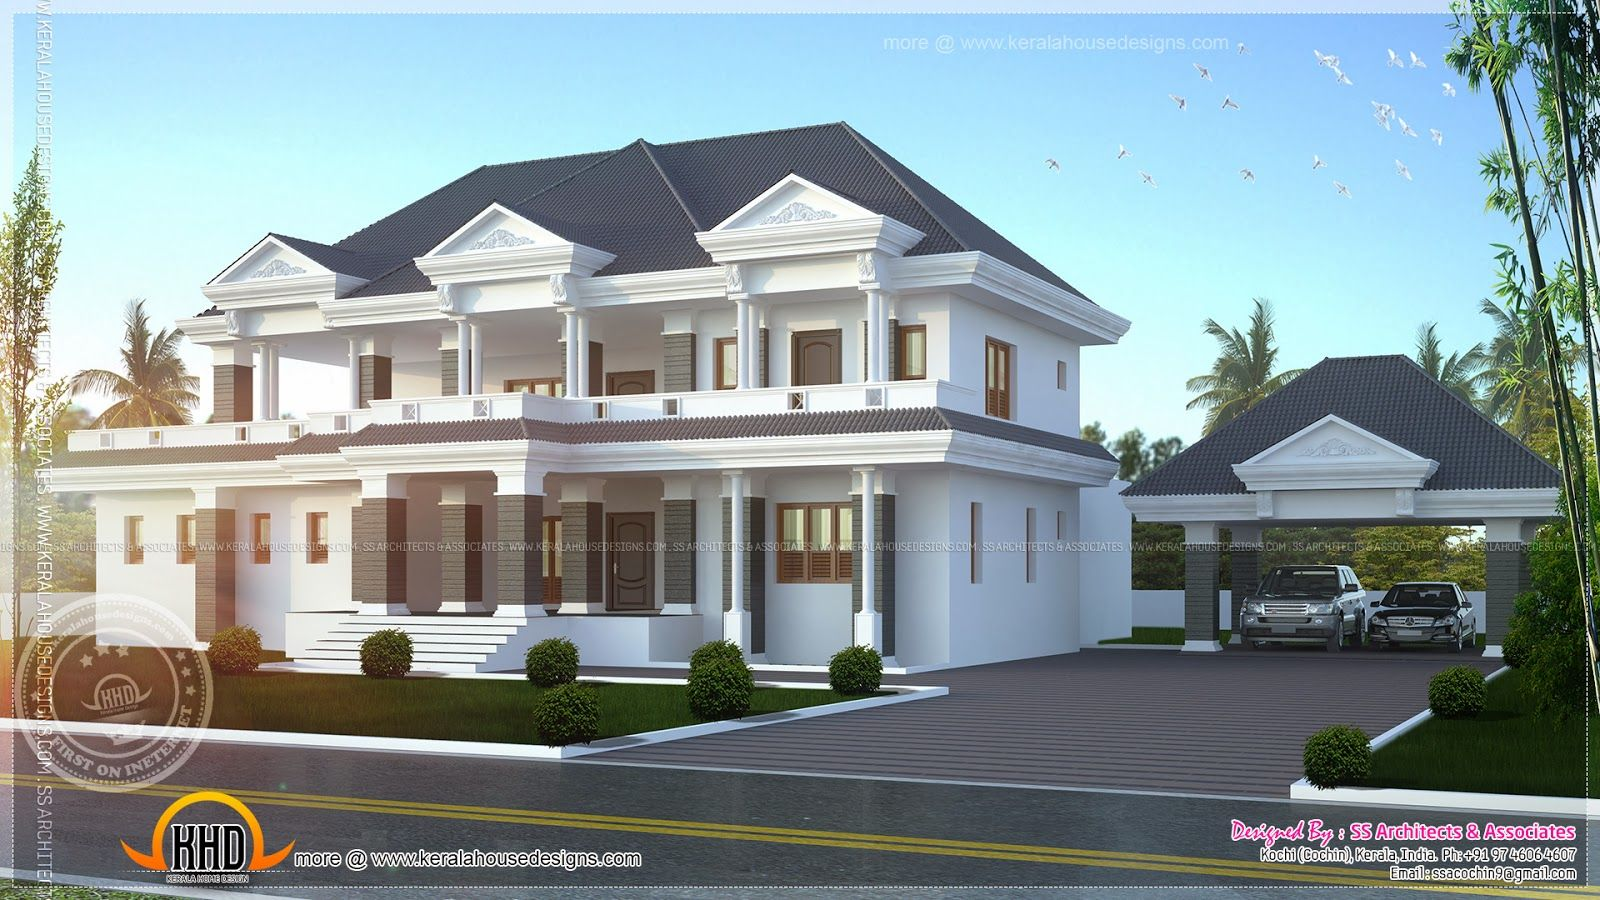 Luxury house plans posh luxury home plan audisb luxury luxury homes luxurious houses - Luxury houseplans ideas ...